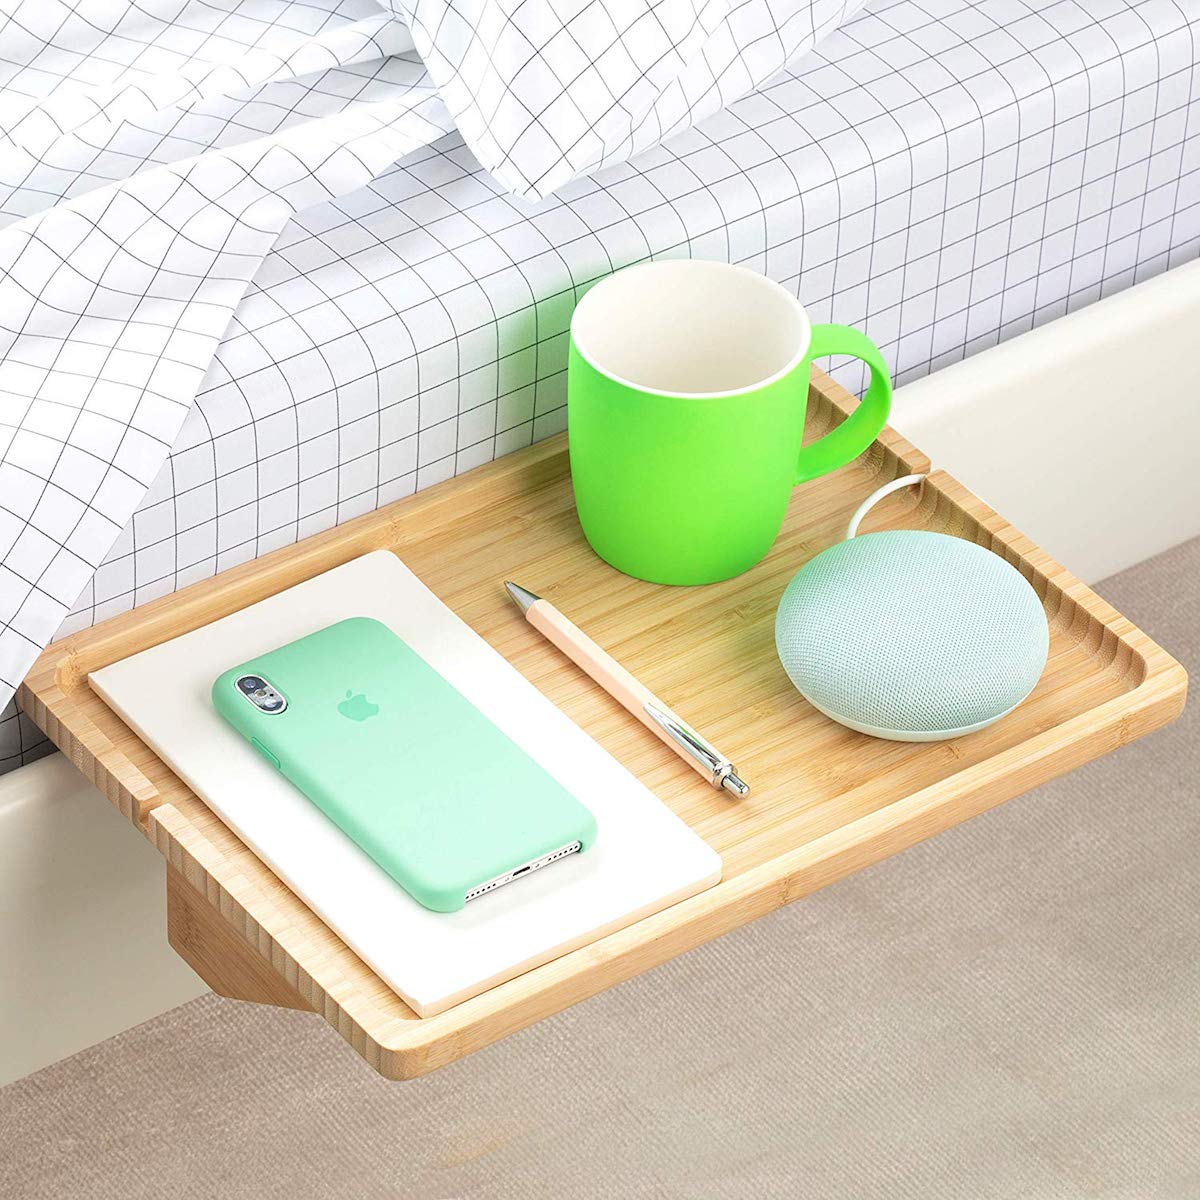 Wood bedside shelf that attaches to side of bed